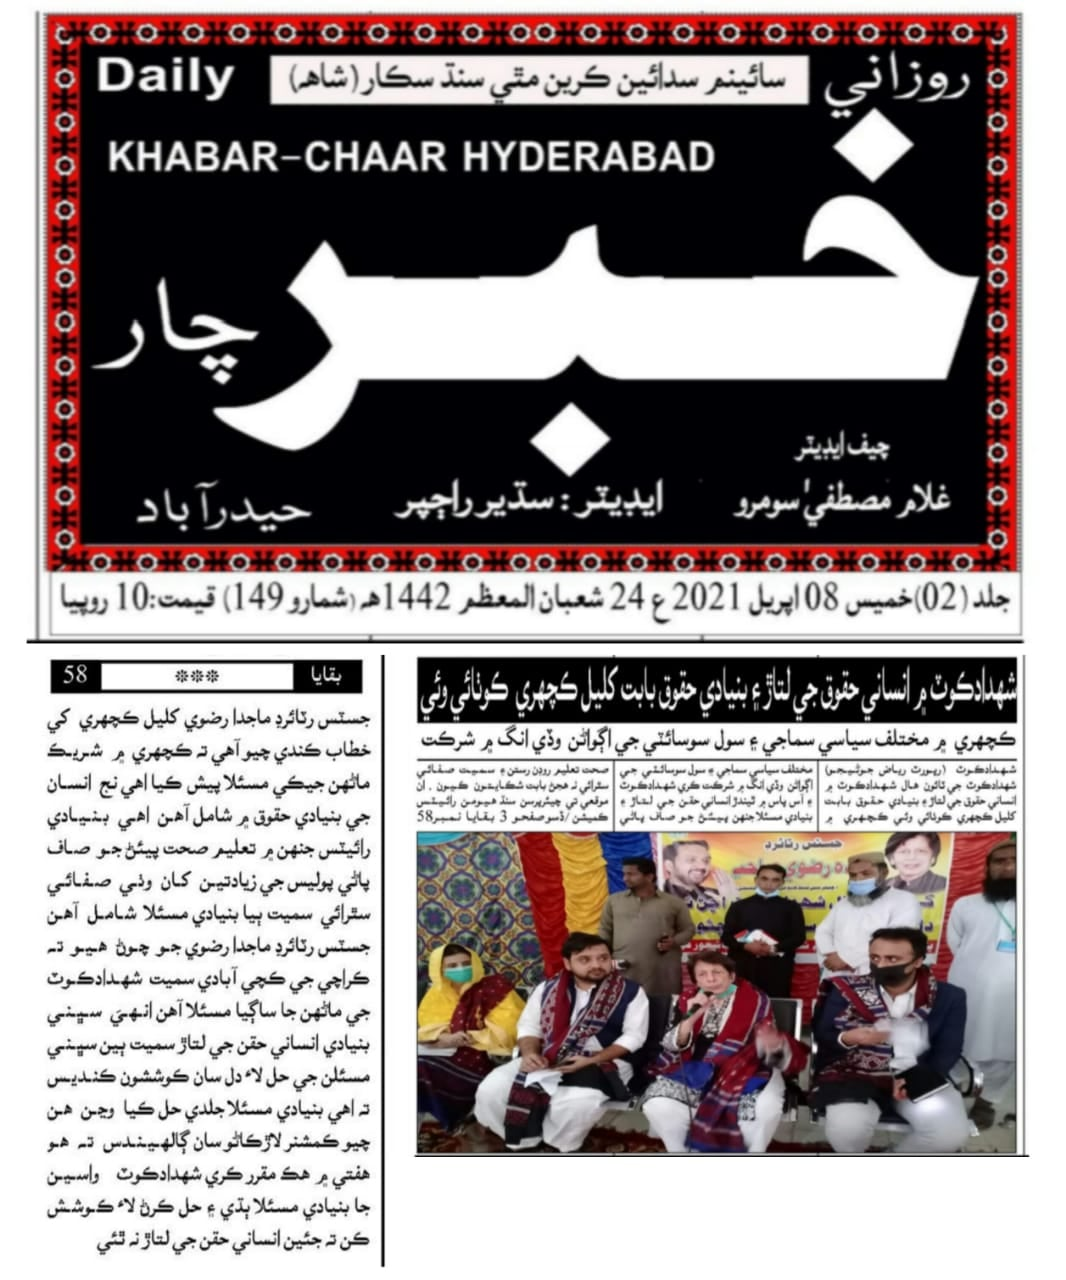 Visit of Chairperson, SHRC to District Qambar Shadadkot - Media Coverage